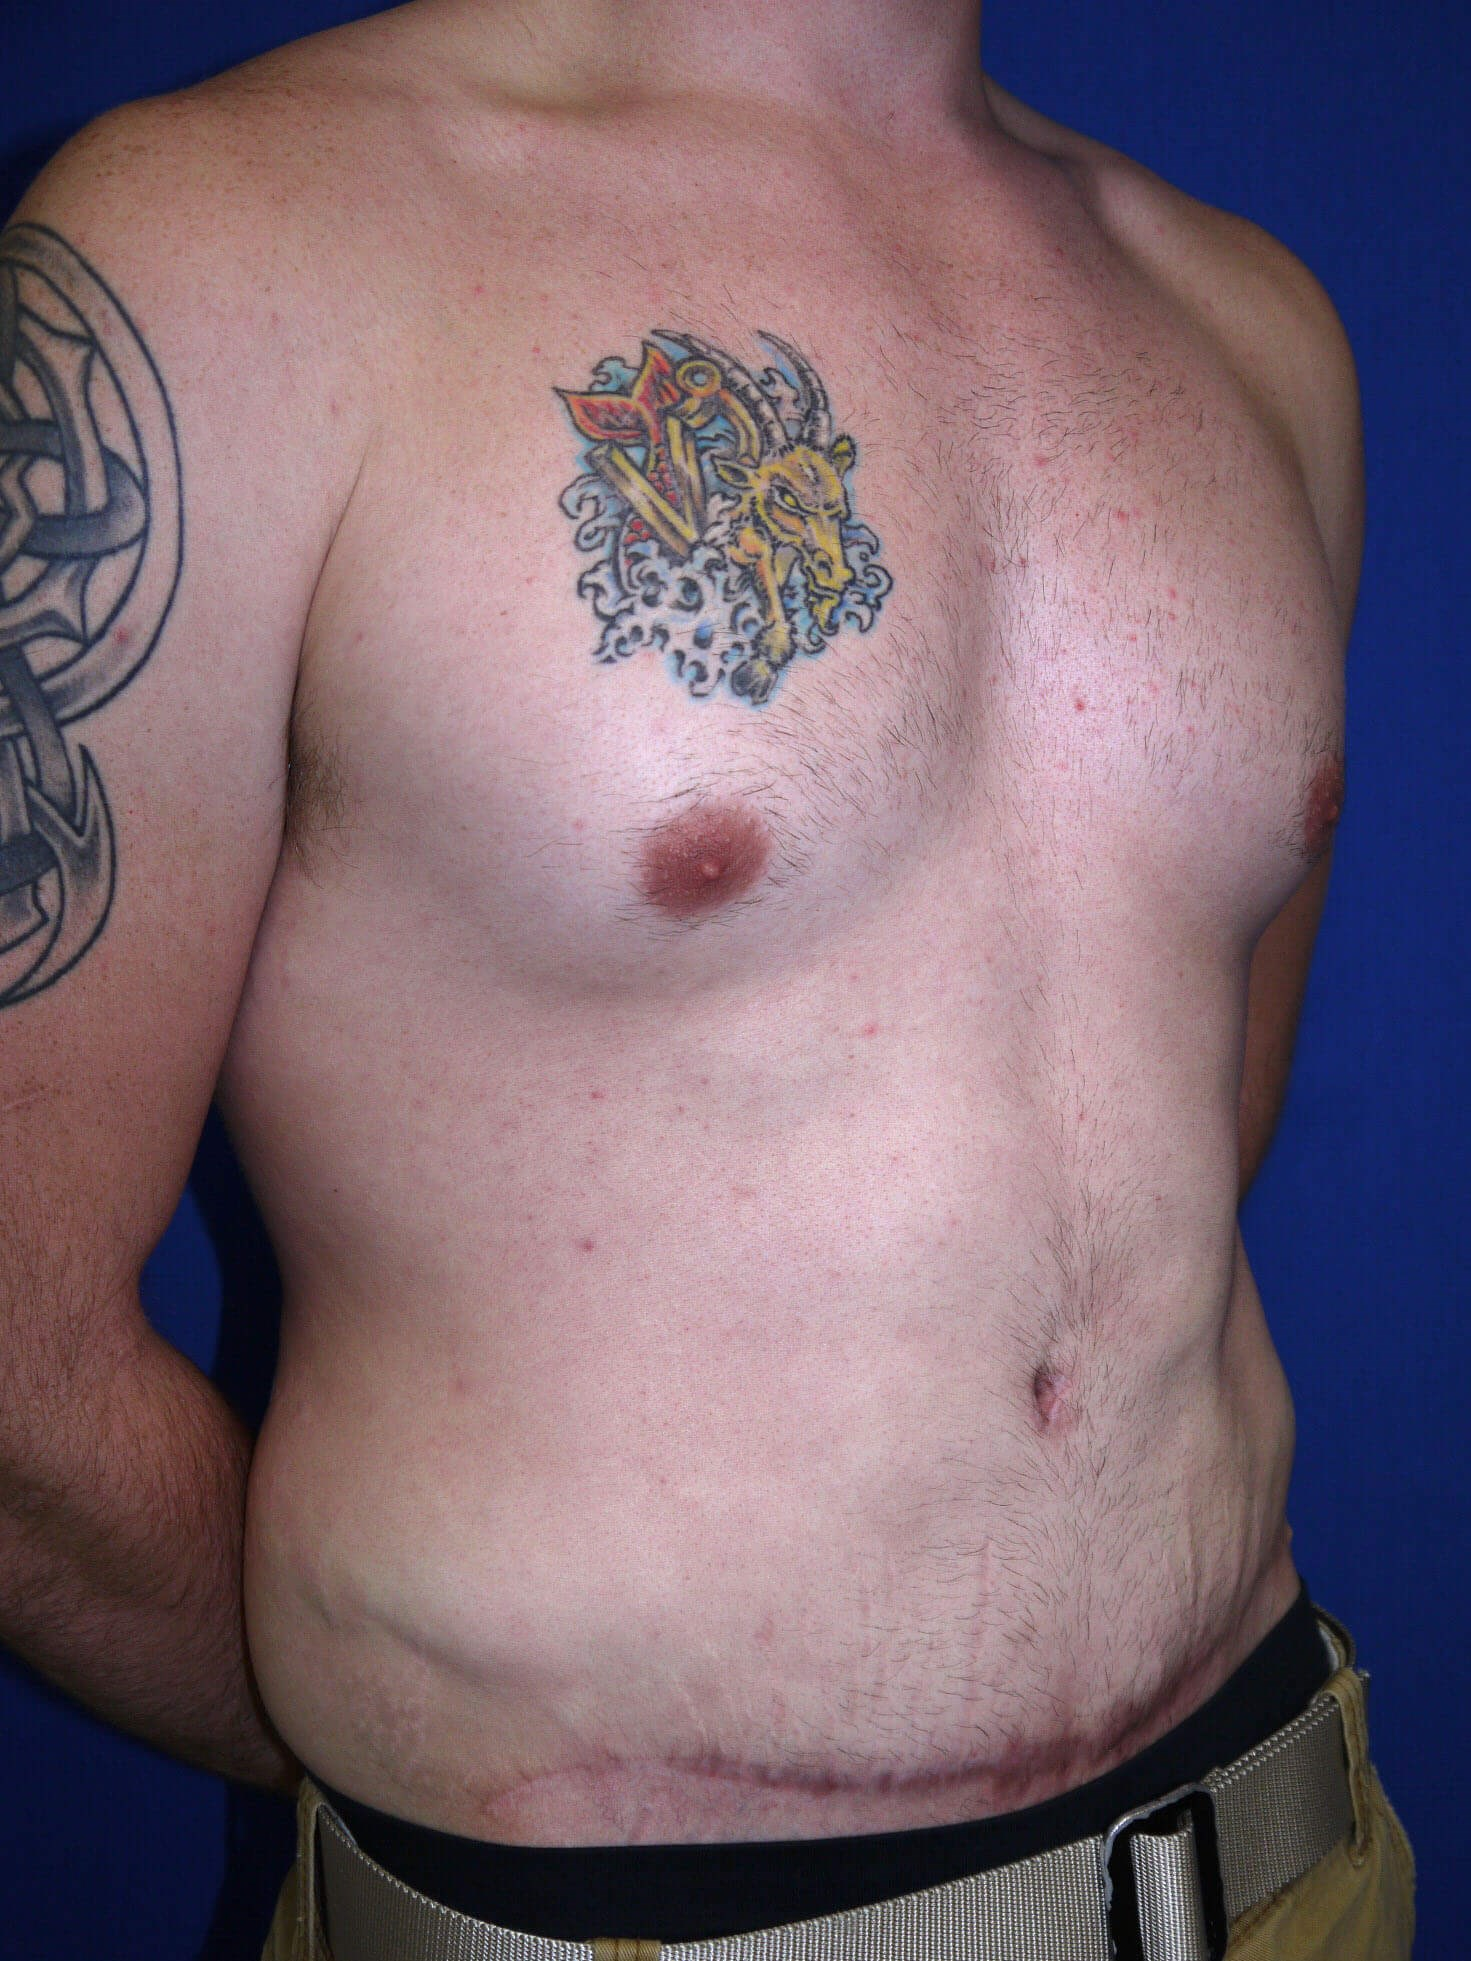 After Tummy Tuck After Weight Loss Surgery Right Oblique View - Right Oblique View